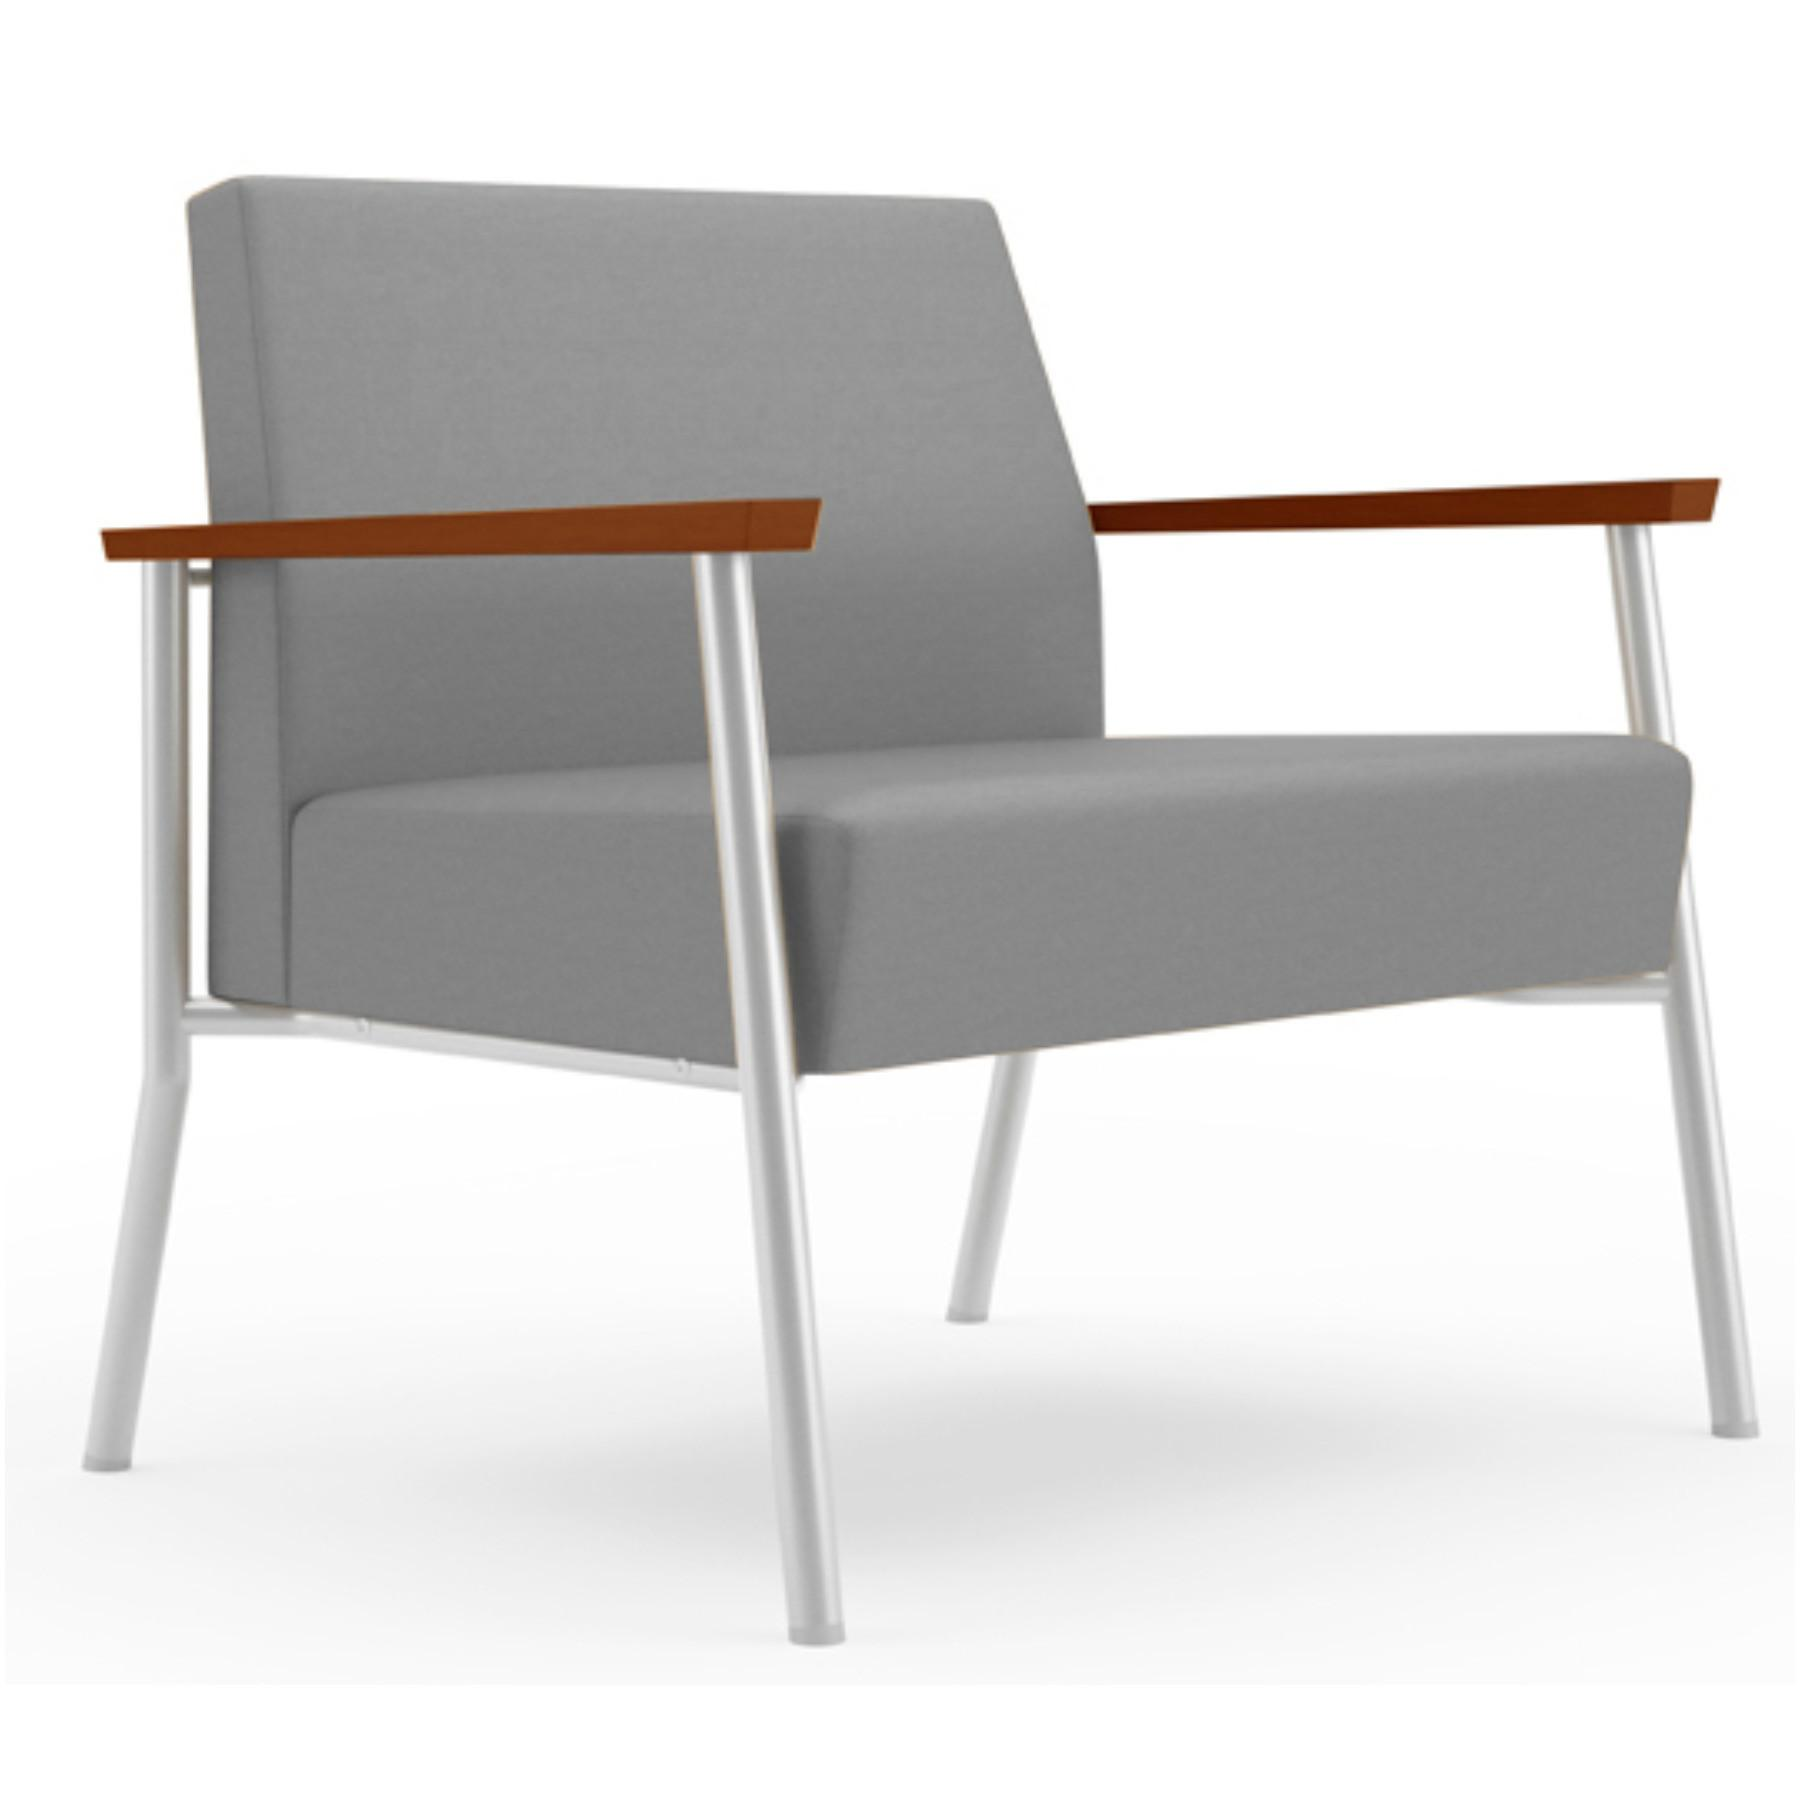 Modern Office 750 Lbs Open Arm Bariatric Lounge Chair